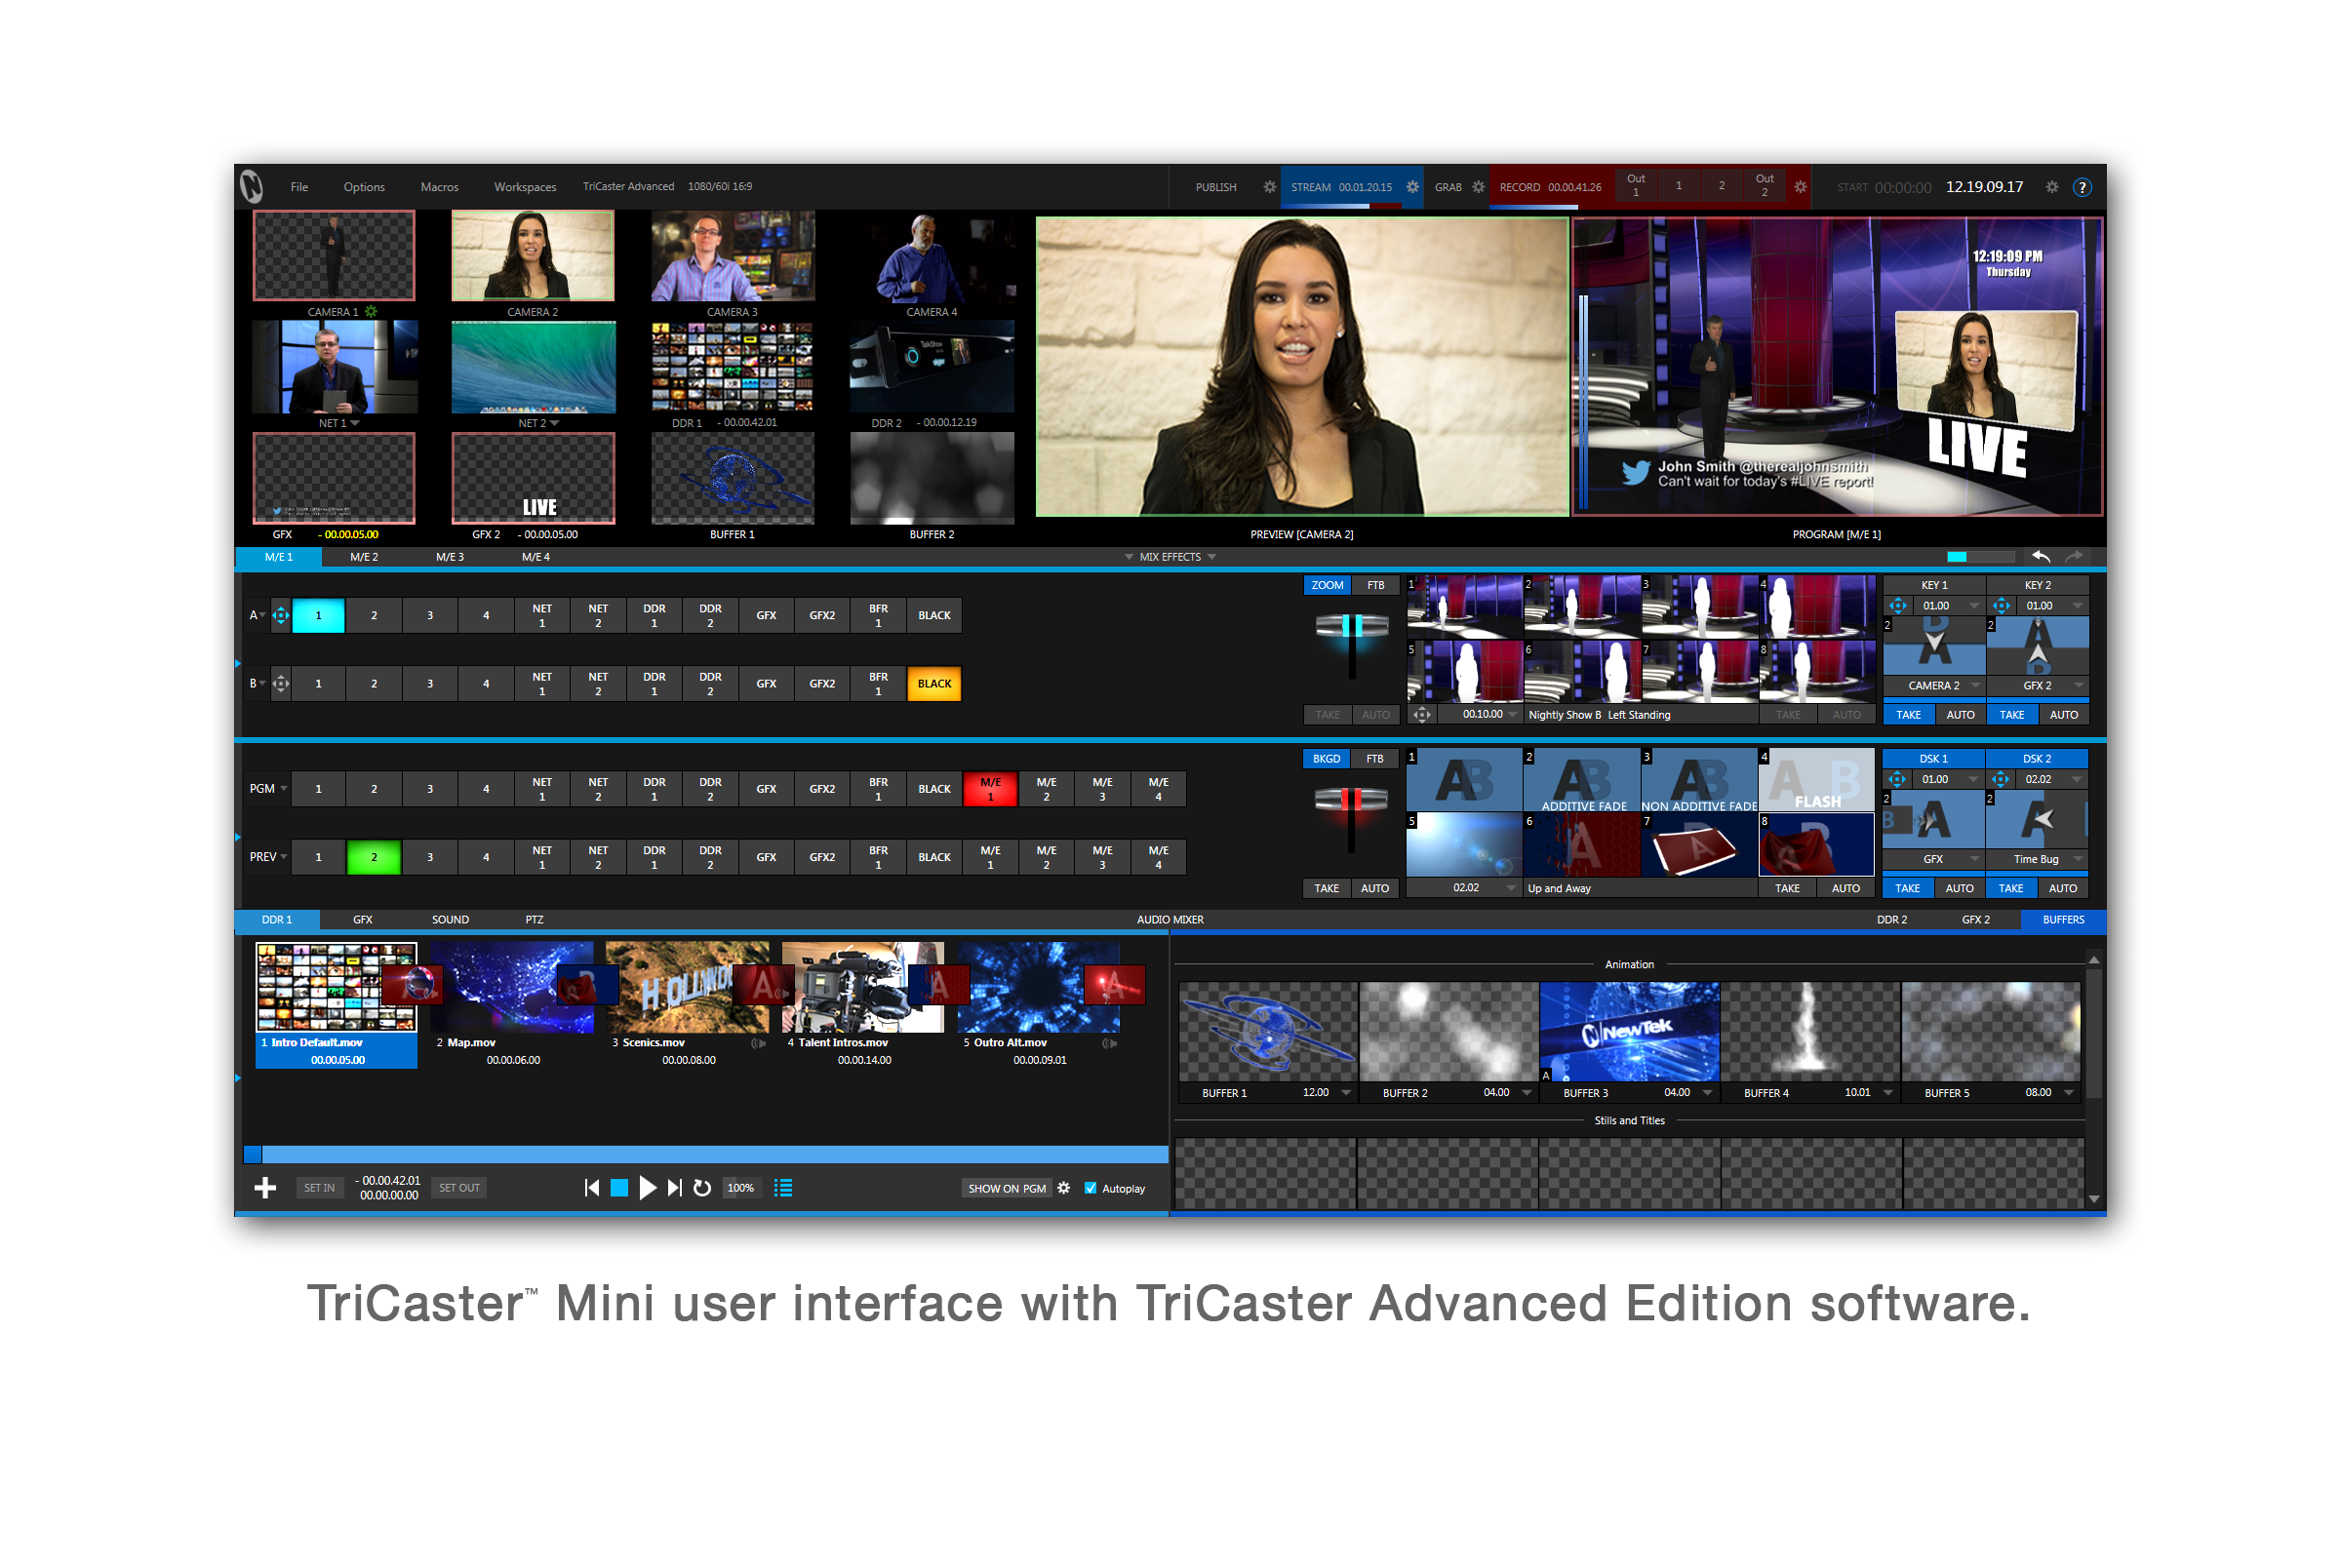 TriCaster Mini user interface with TriCaster Advanced Edition software